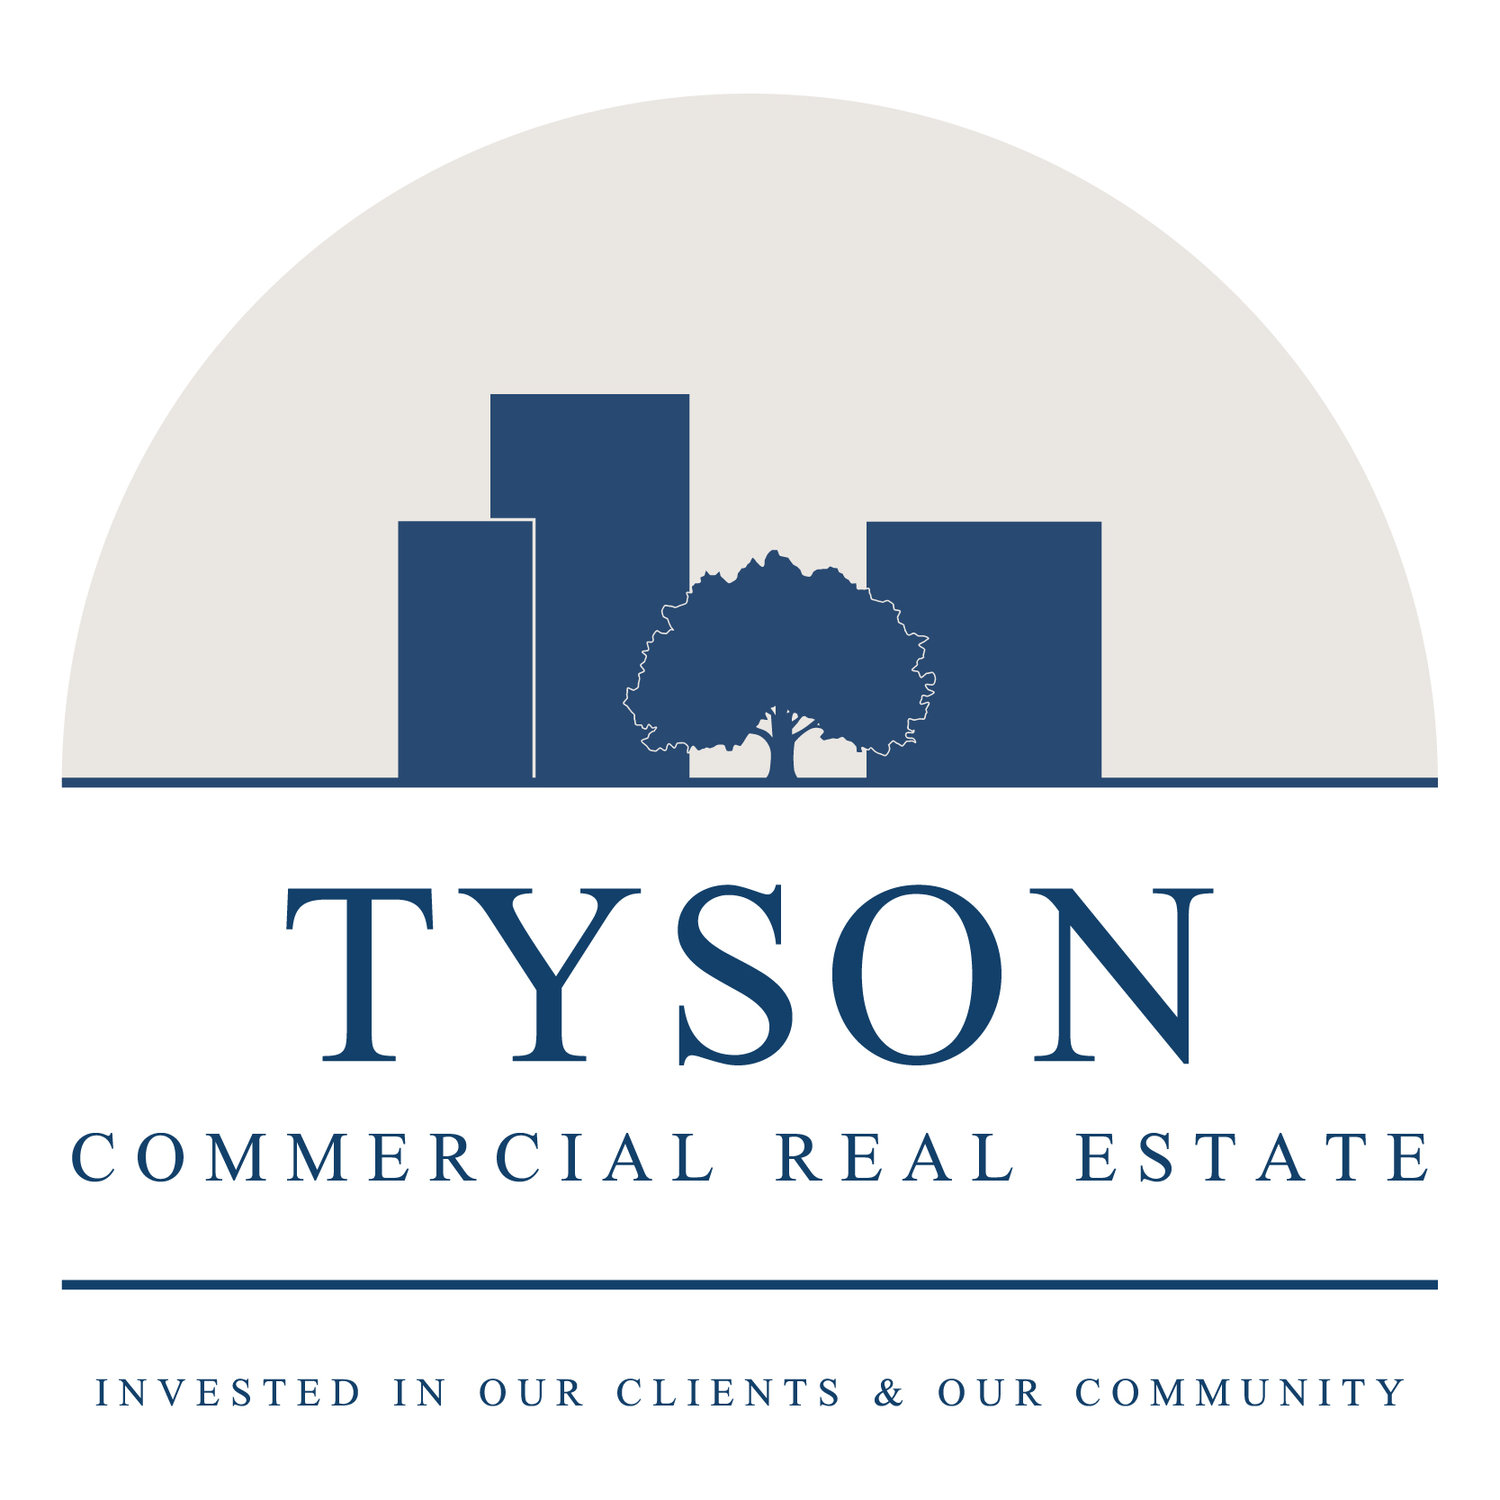 Tyson Commercial Real Estate